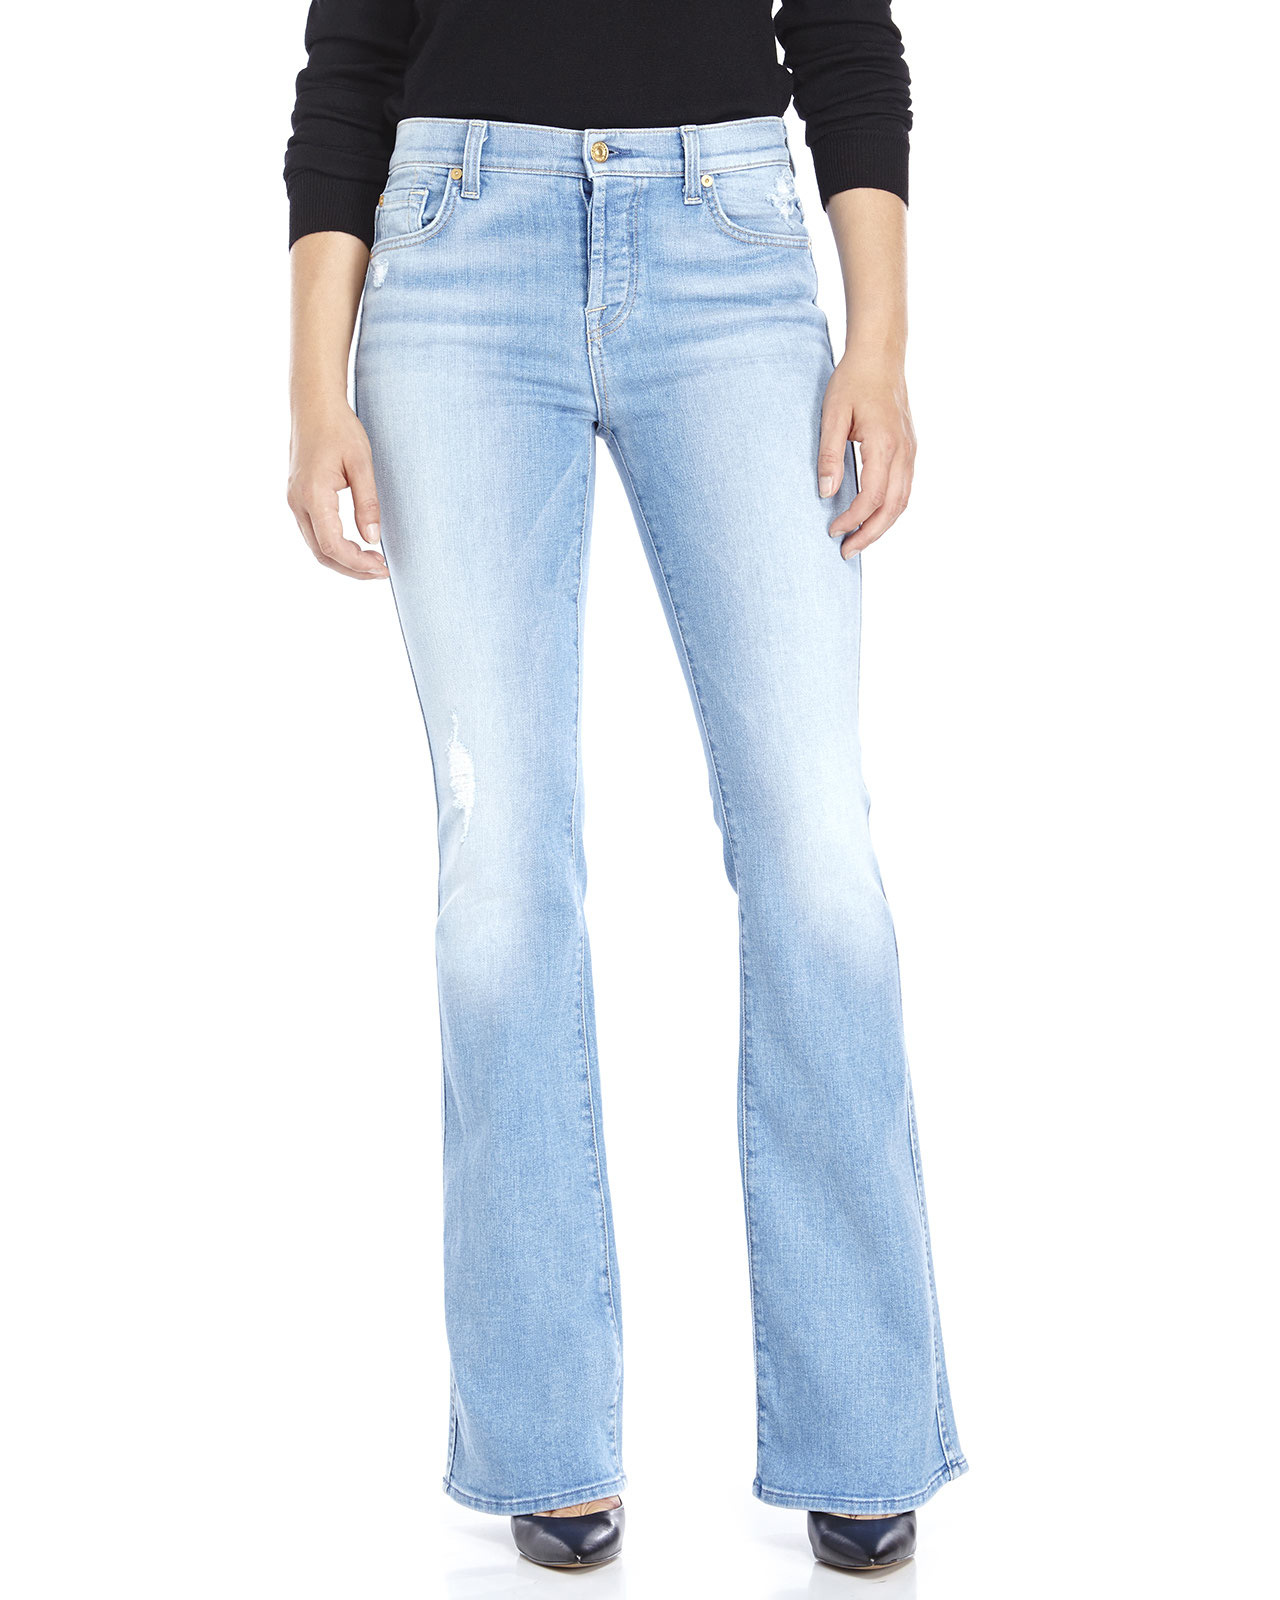 7 for all mankind High Waist Vintage Bootcut Jeans in Blue | Lyst